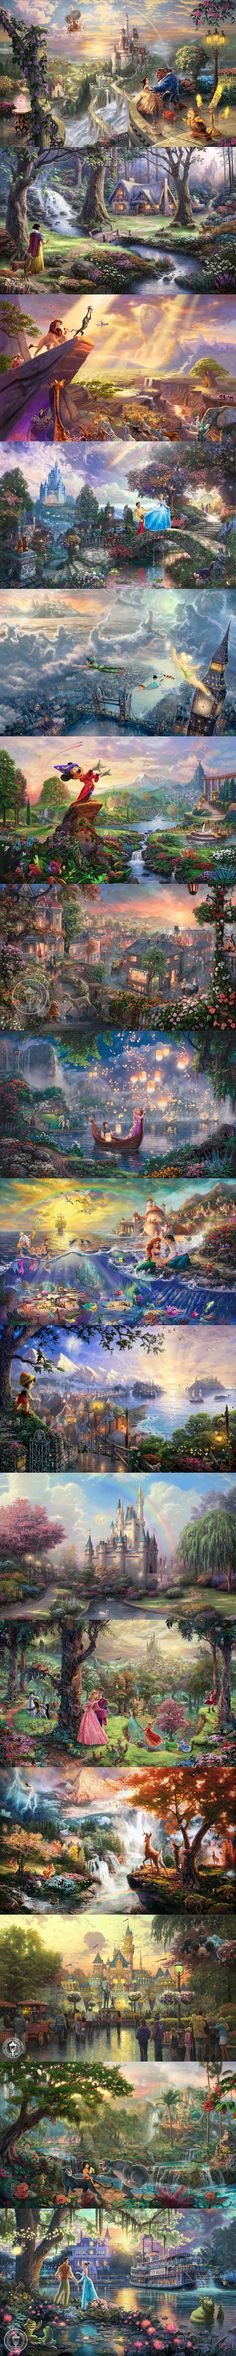 Disney Dreams Collection By Thomas Kinkade my new obsession!! ❤️